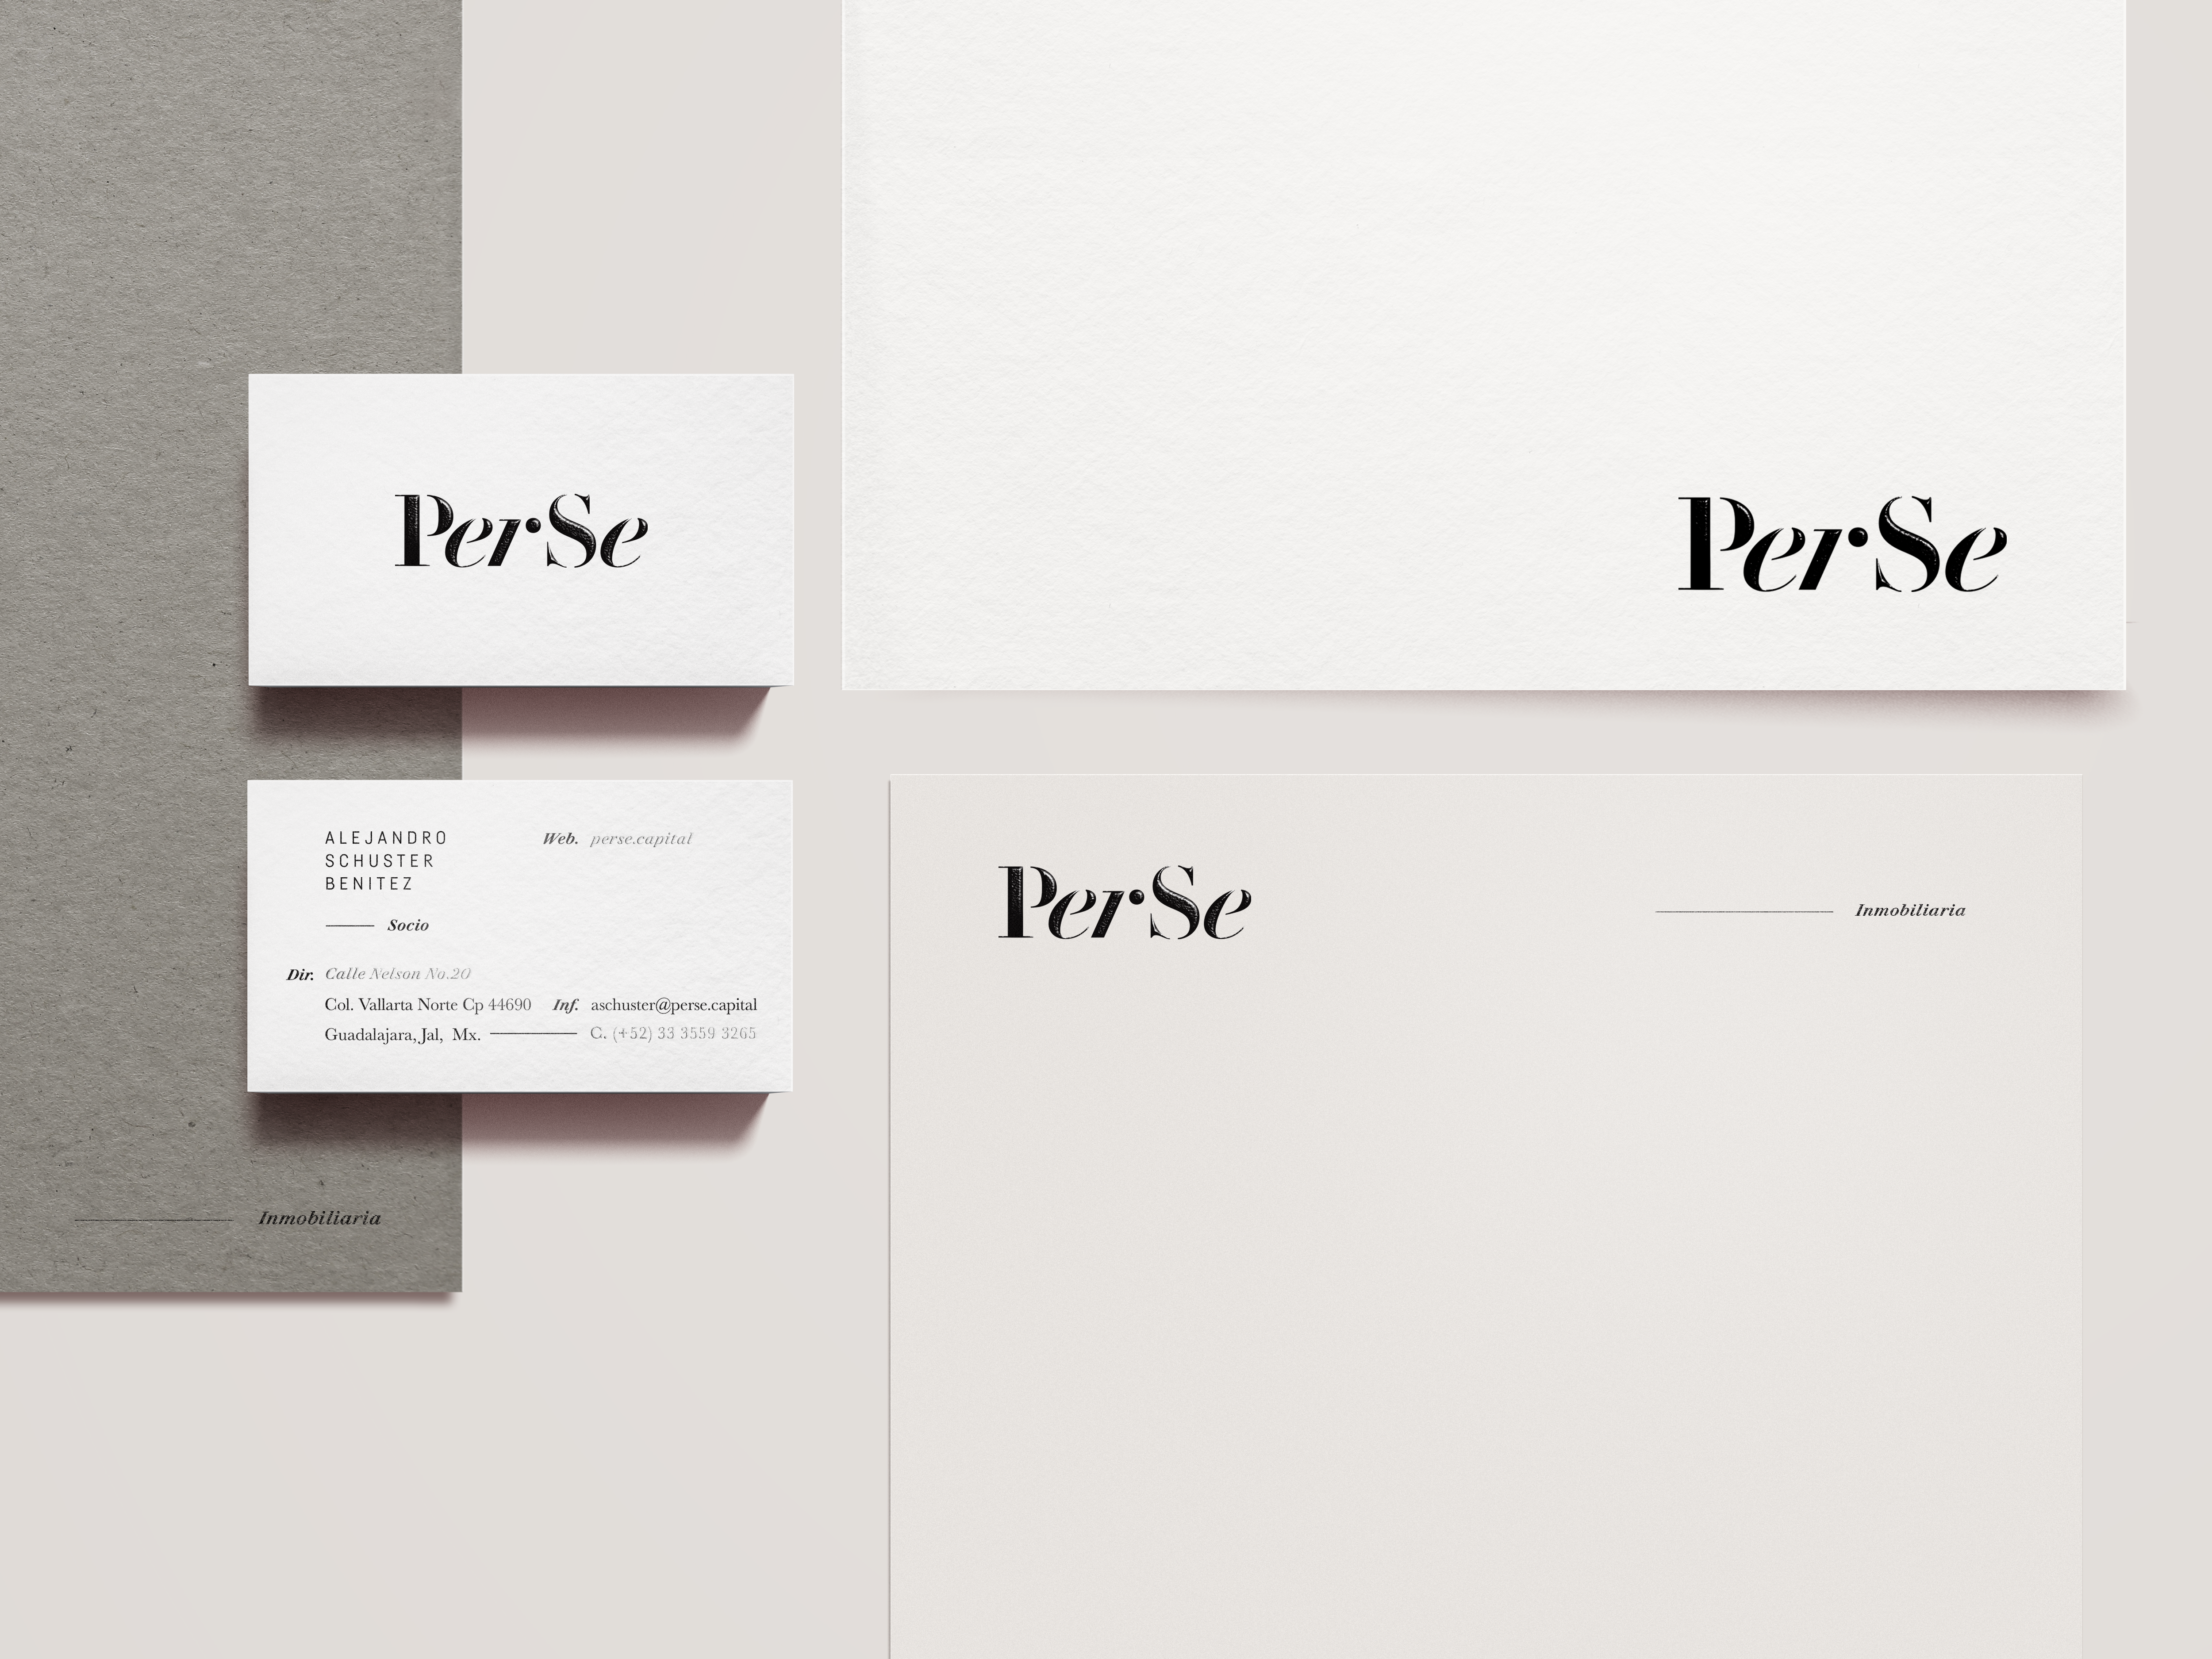 PerSe stationery